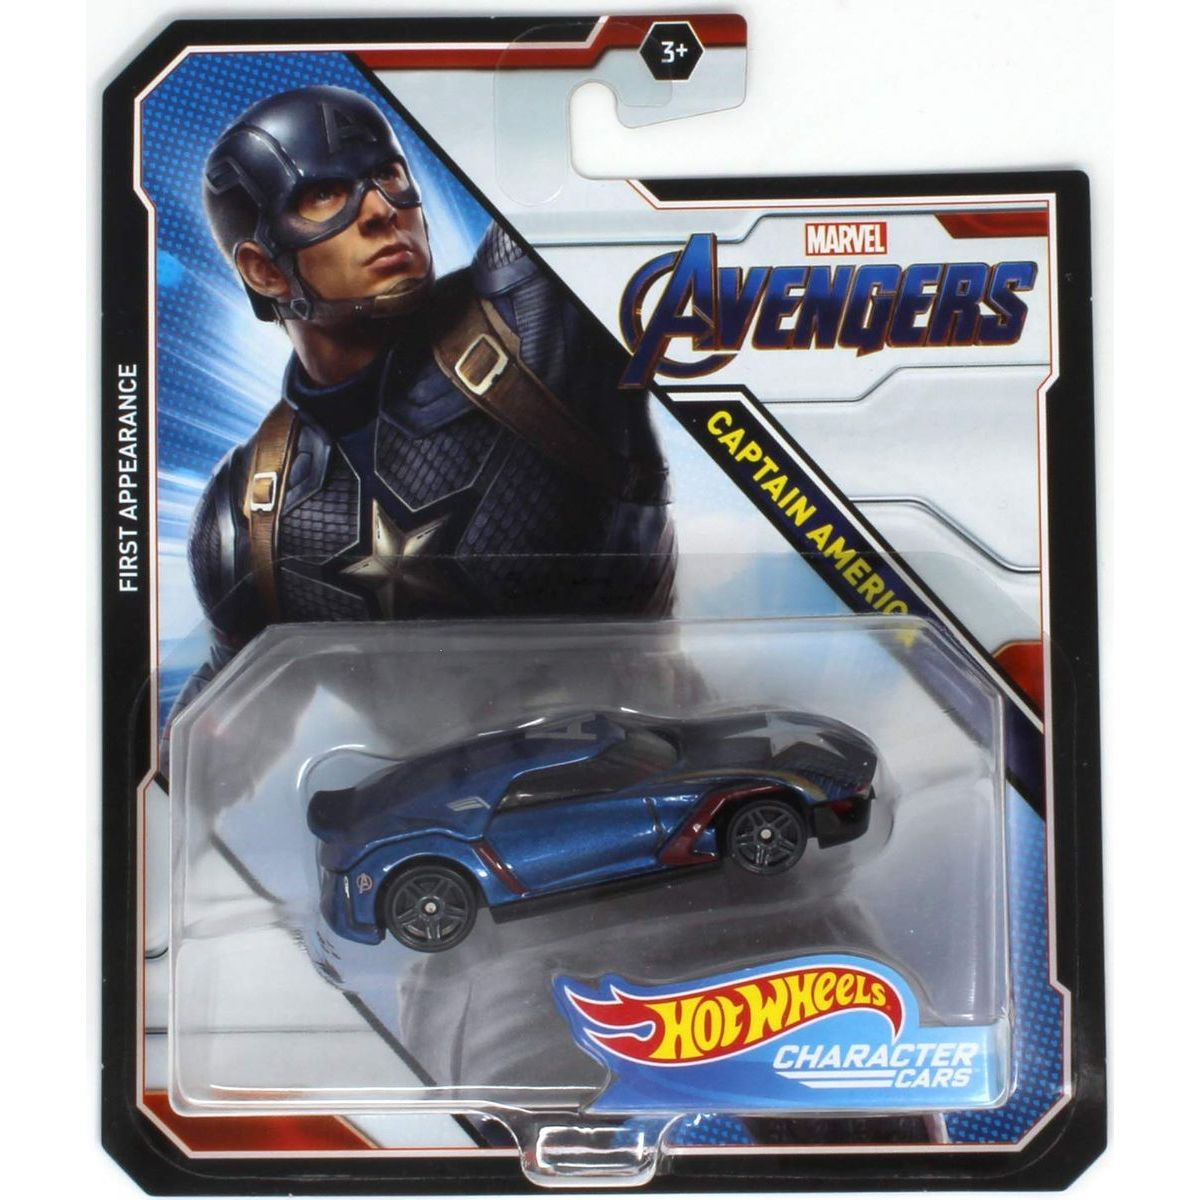 Hot Wheels Marvel Character Cars Captain America